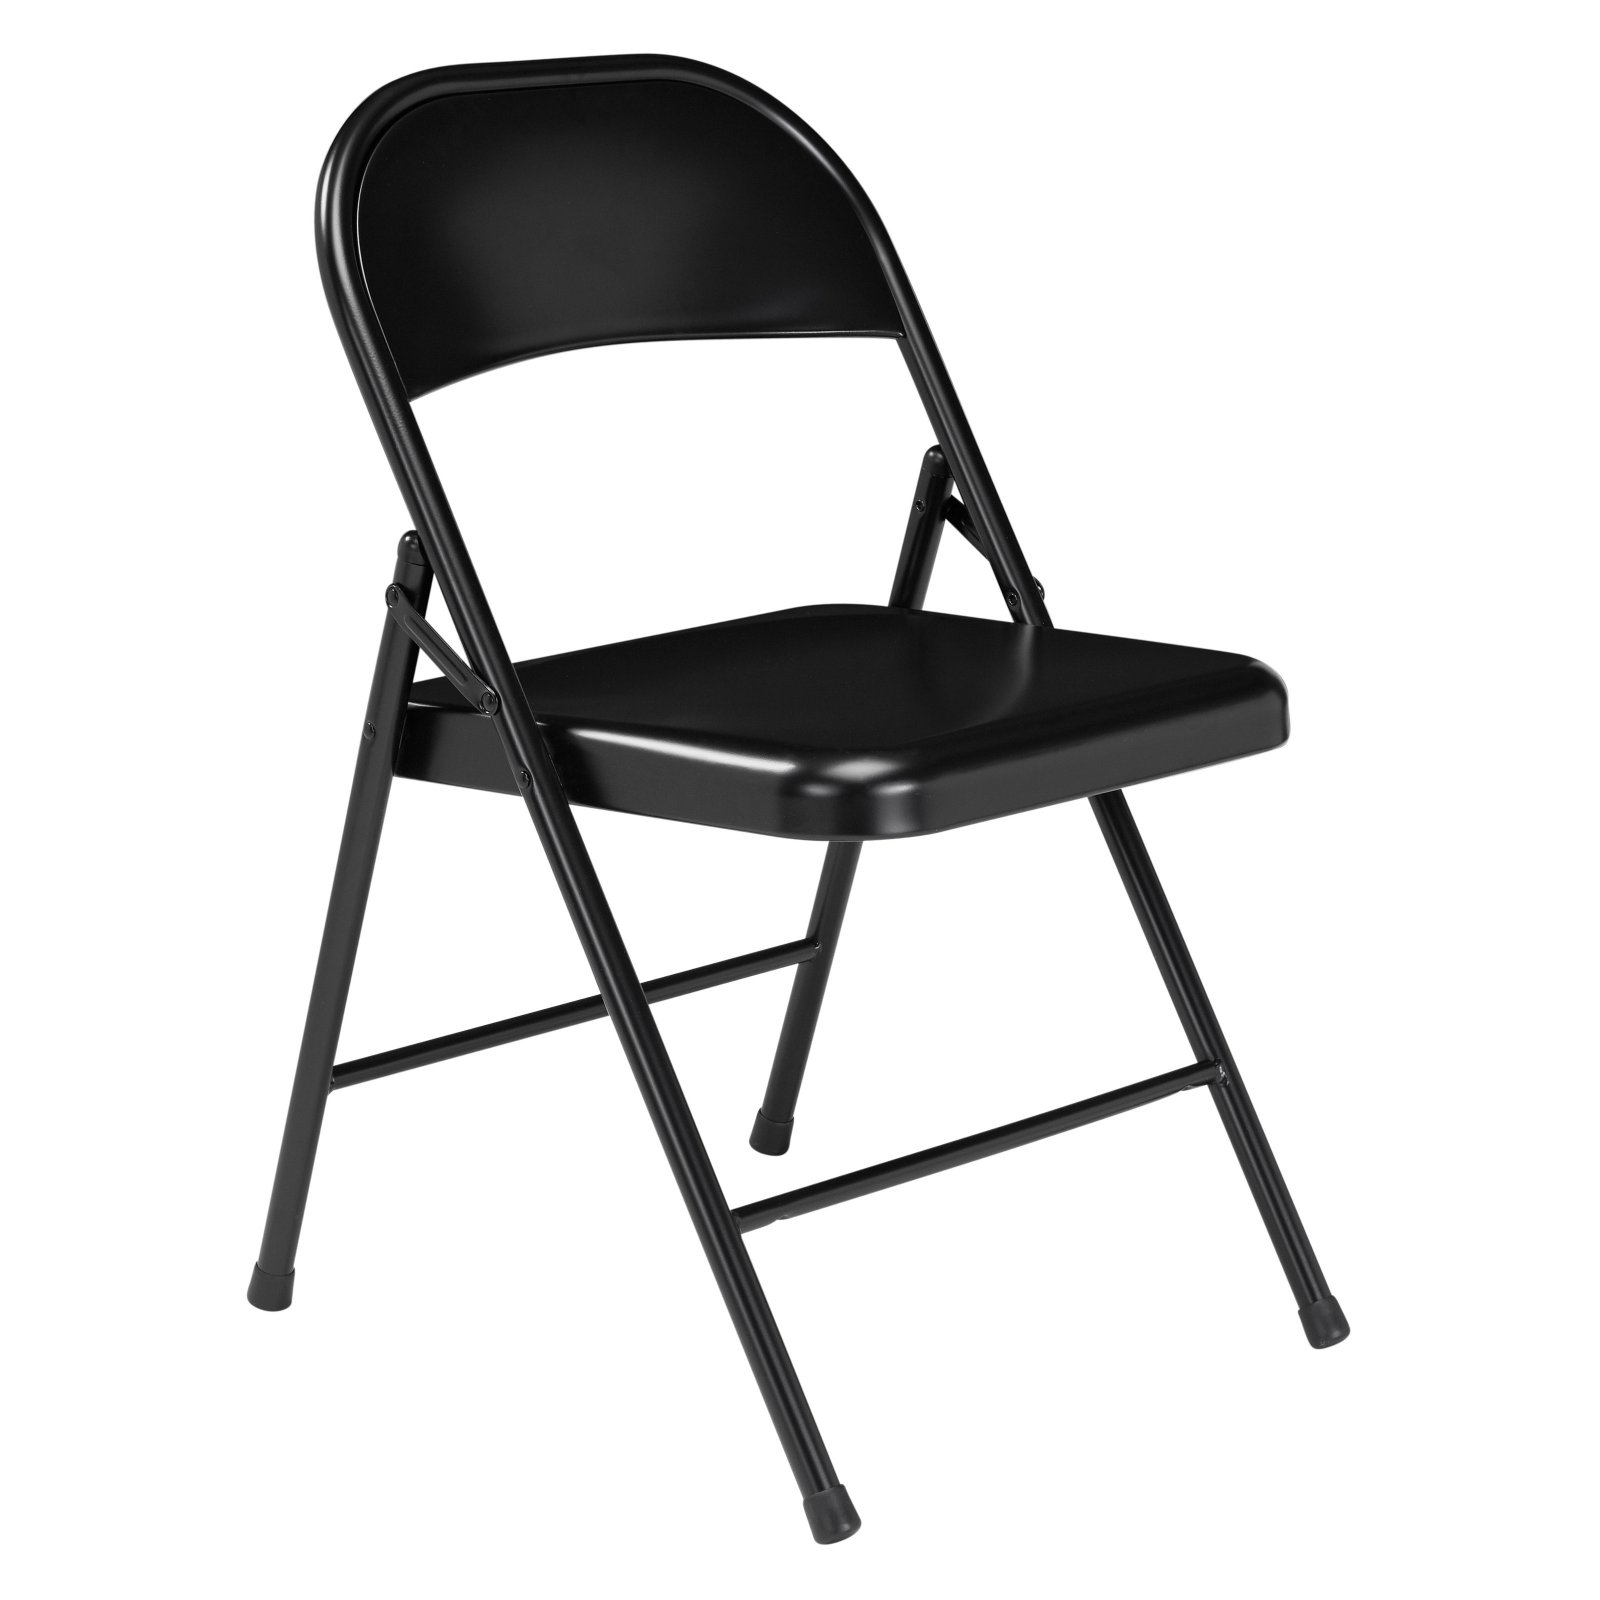 public seating chairs eames chair stool national commercialine all steel folding 4 pack walmart com